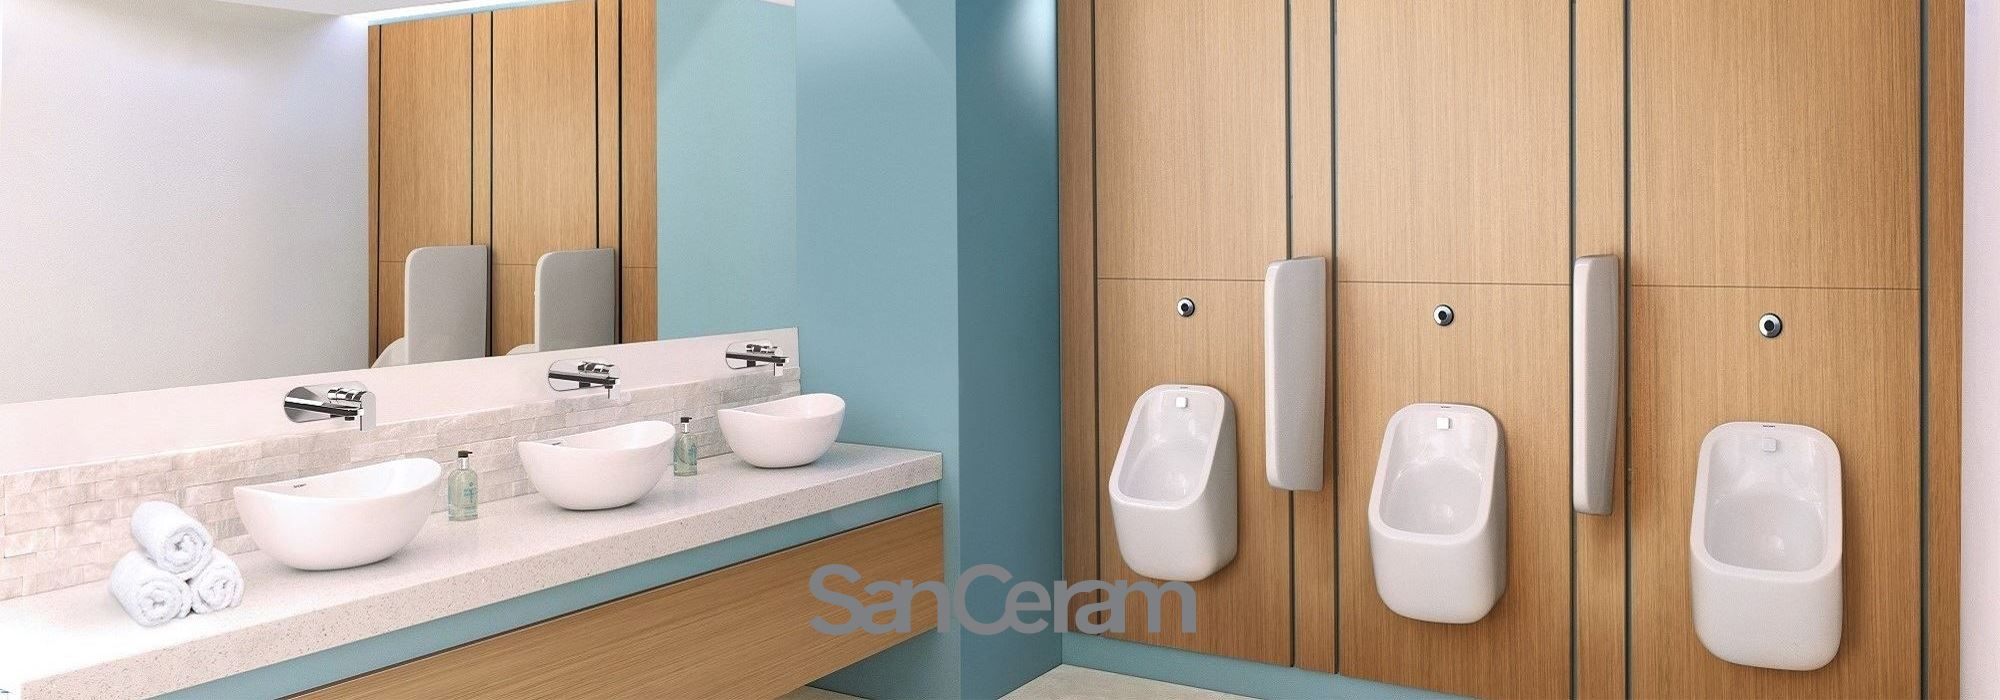 Commercial Sanitaryware